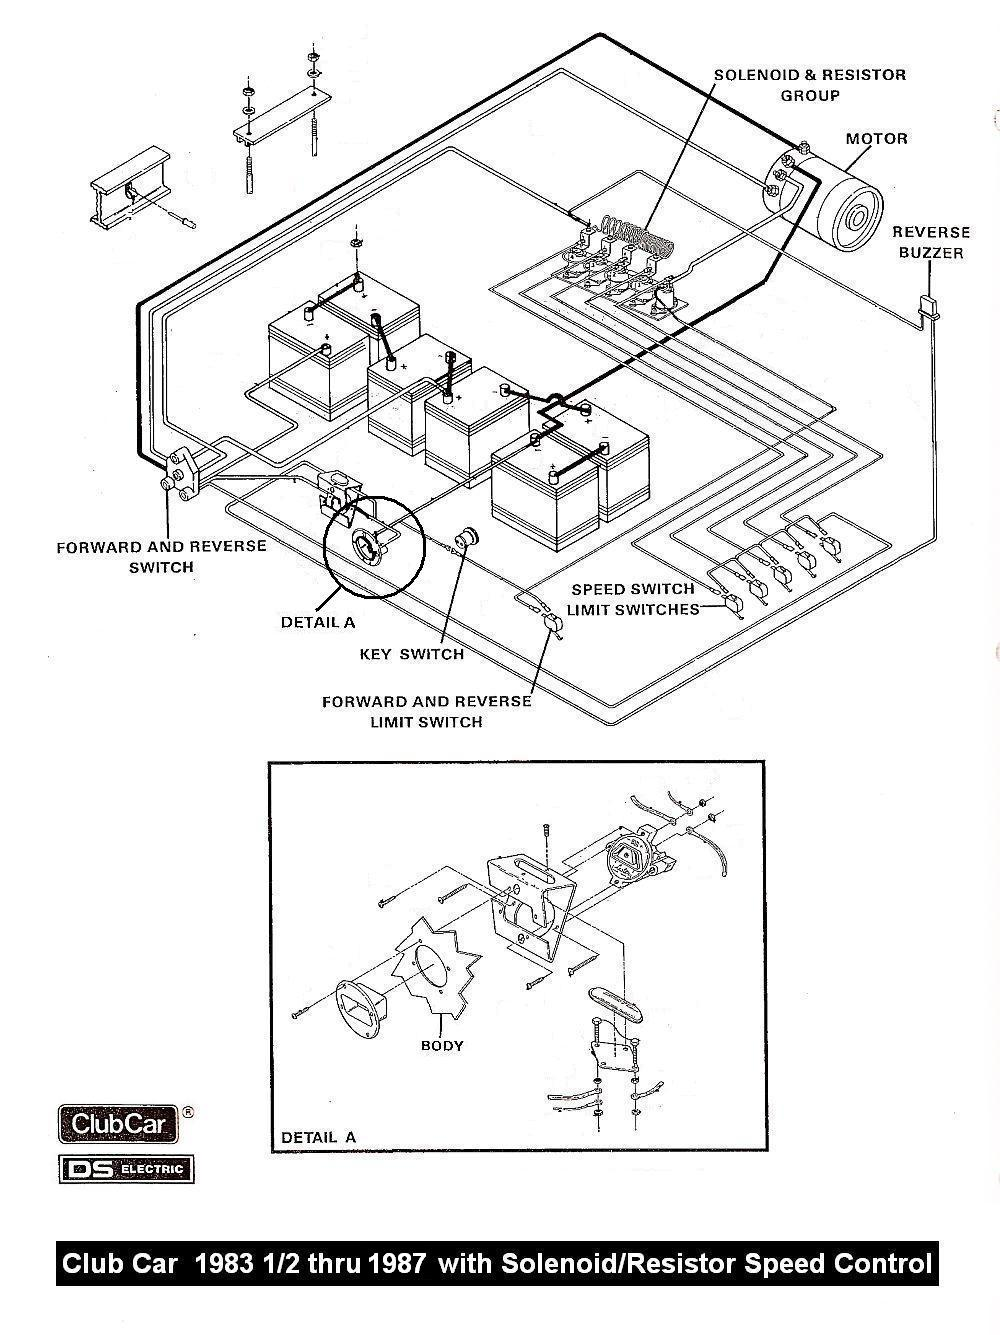 wiring diagram for 1991 club car 36 volt electric club car wiring diagrams #10